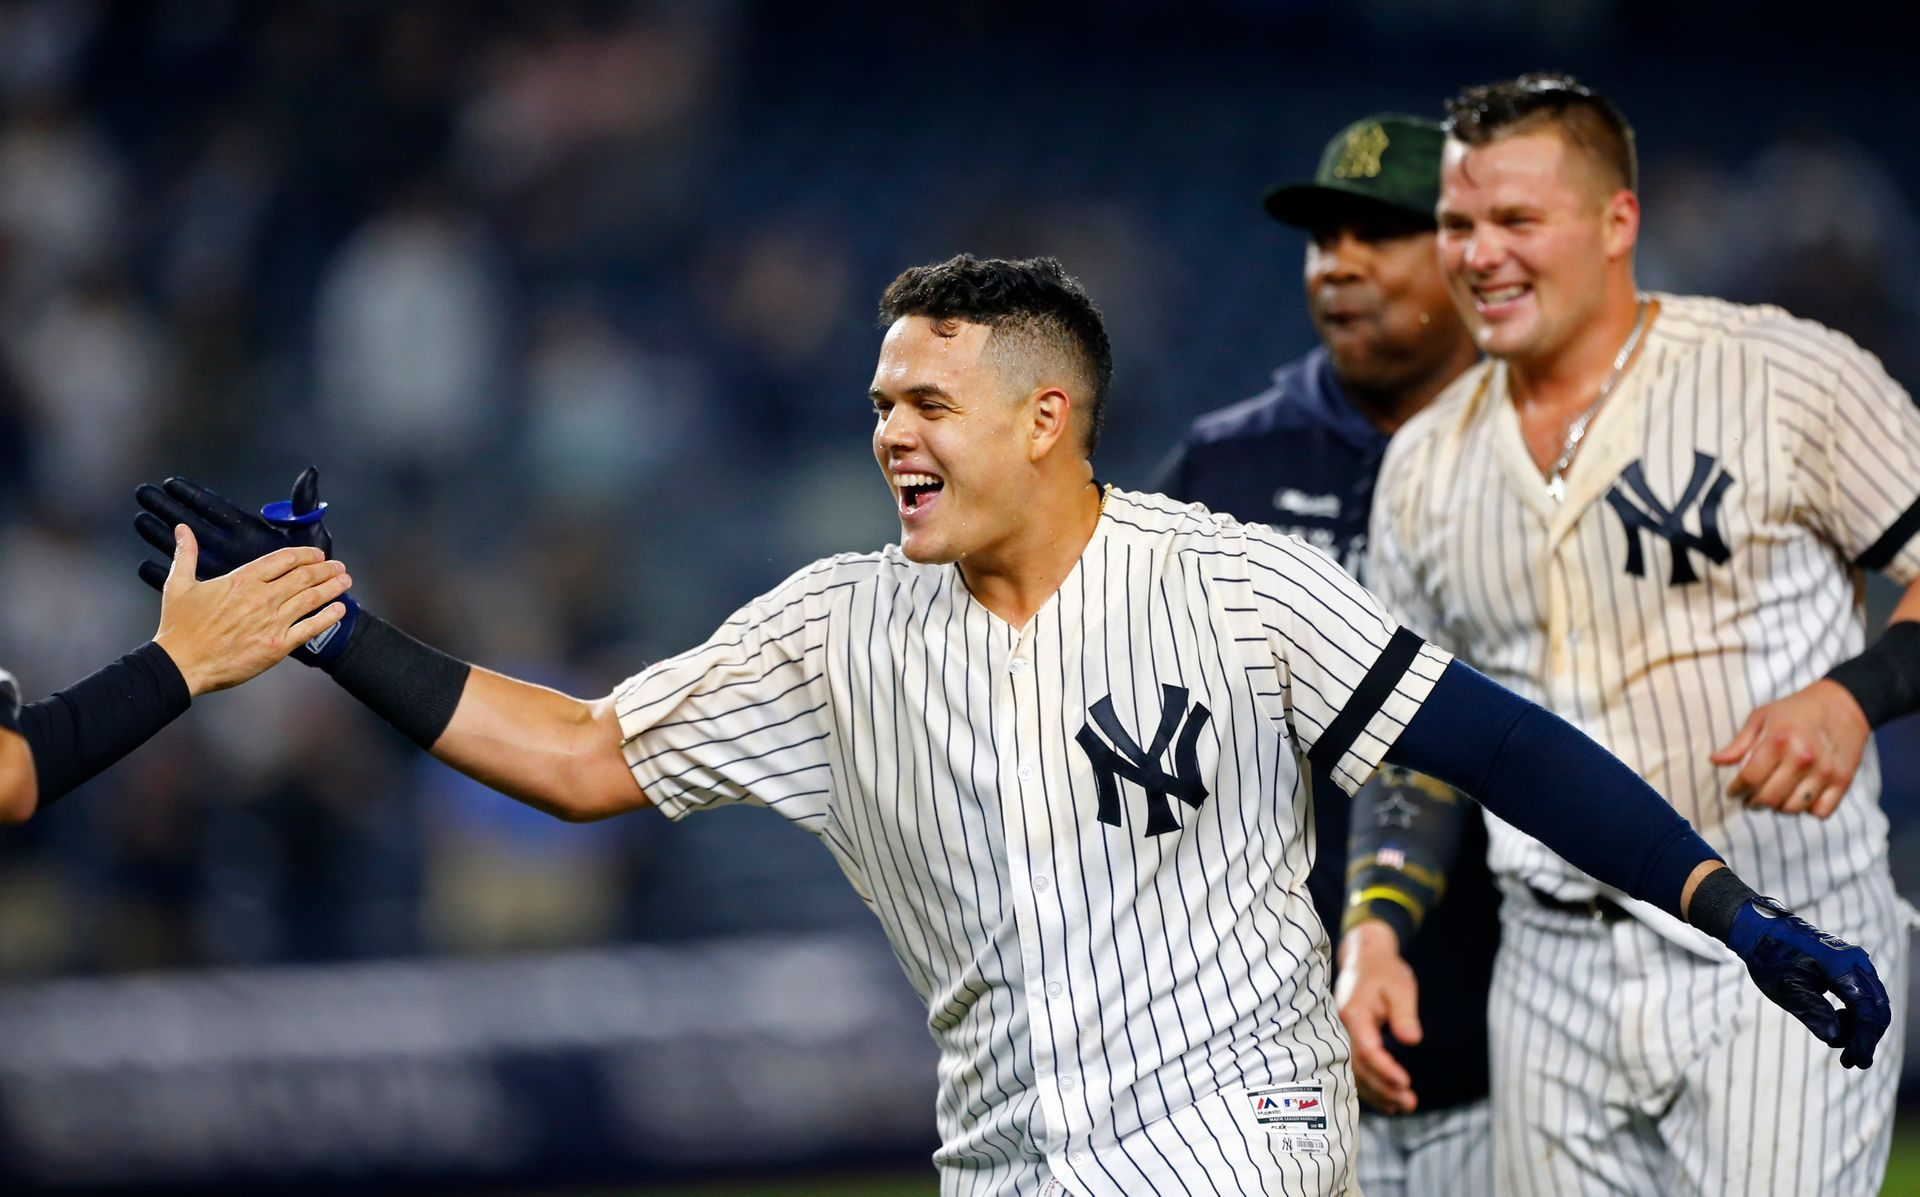 August Waiver Acquisition to Bronx Hero